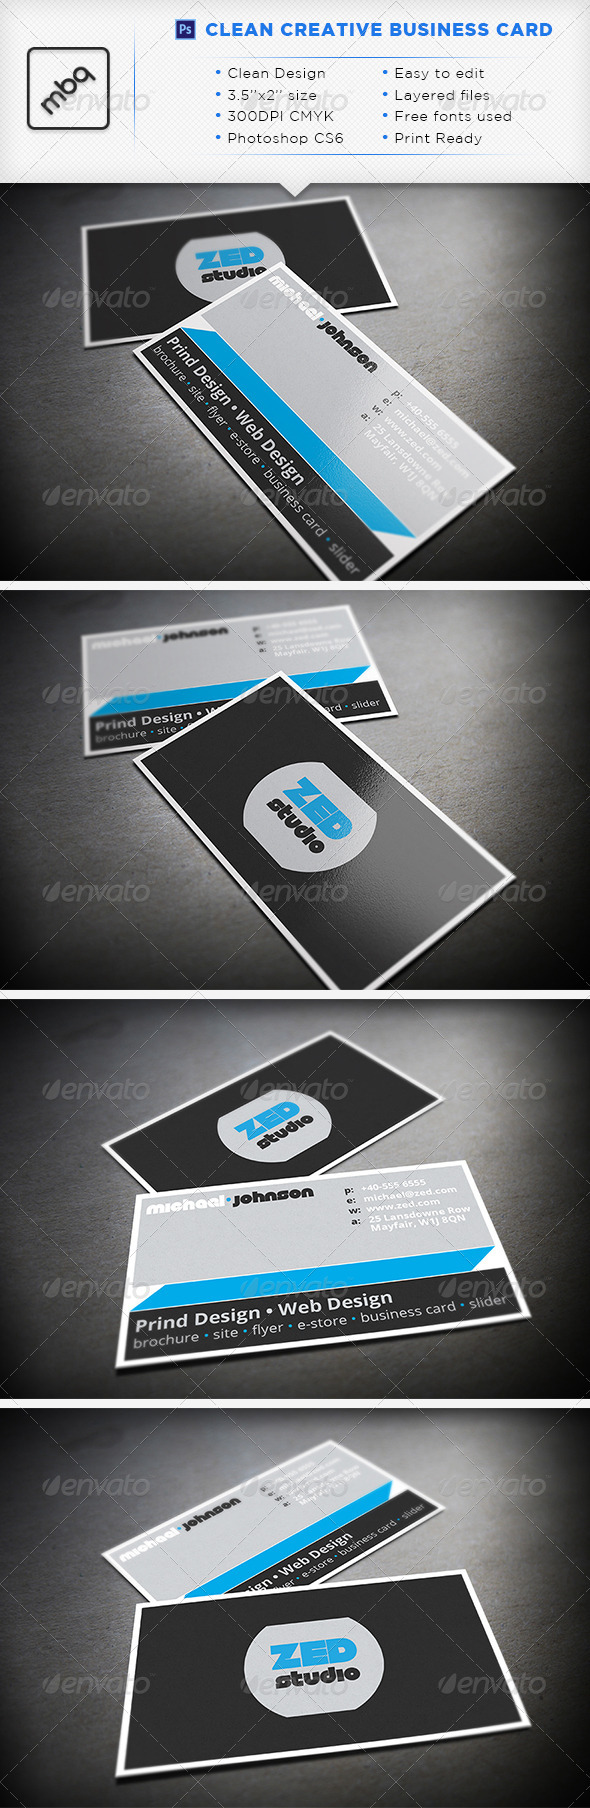 GraphicRiver Clean Creative Business Card 3586793